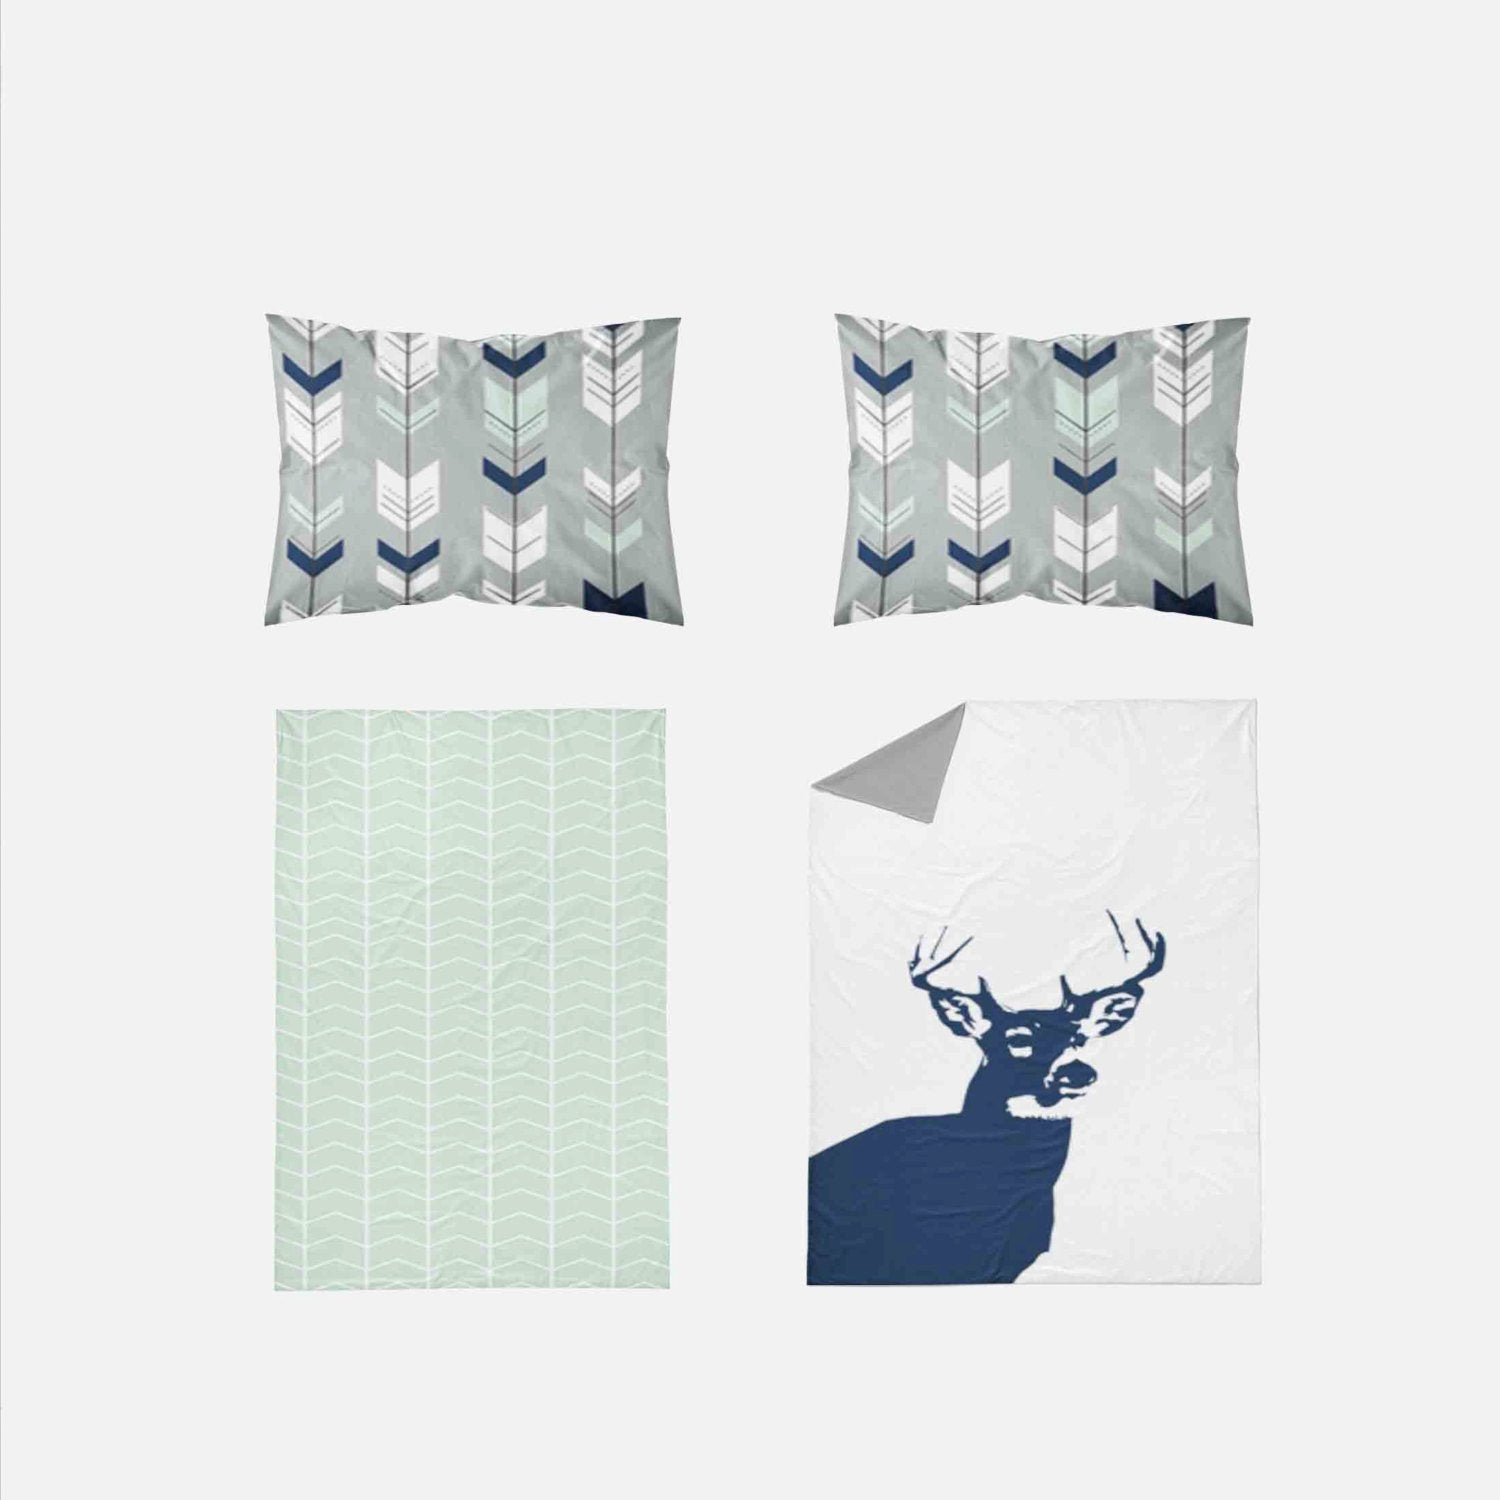 Boy Toddler Bedding Sets - Woodland Navy Deer - Orange Blossom Special  @orangeblossomspecial805